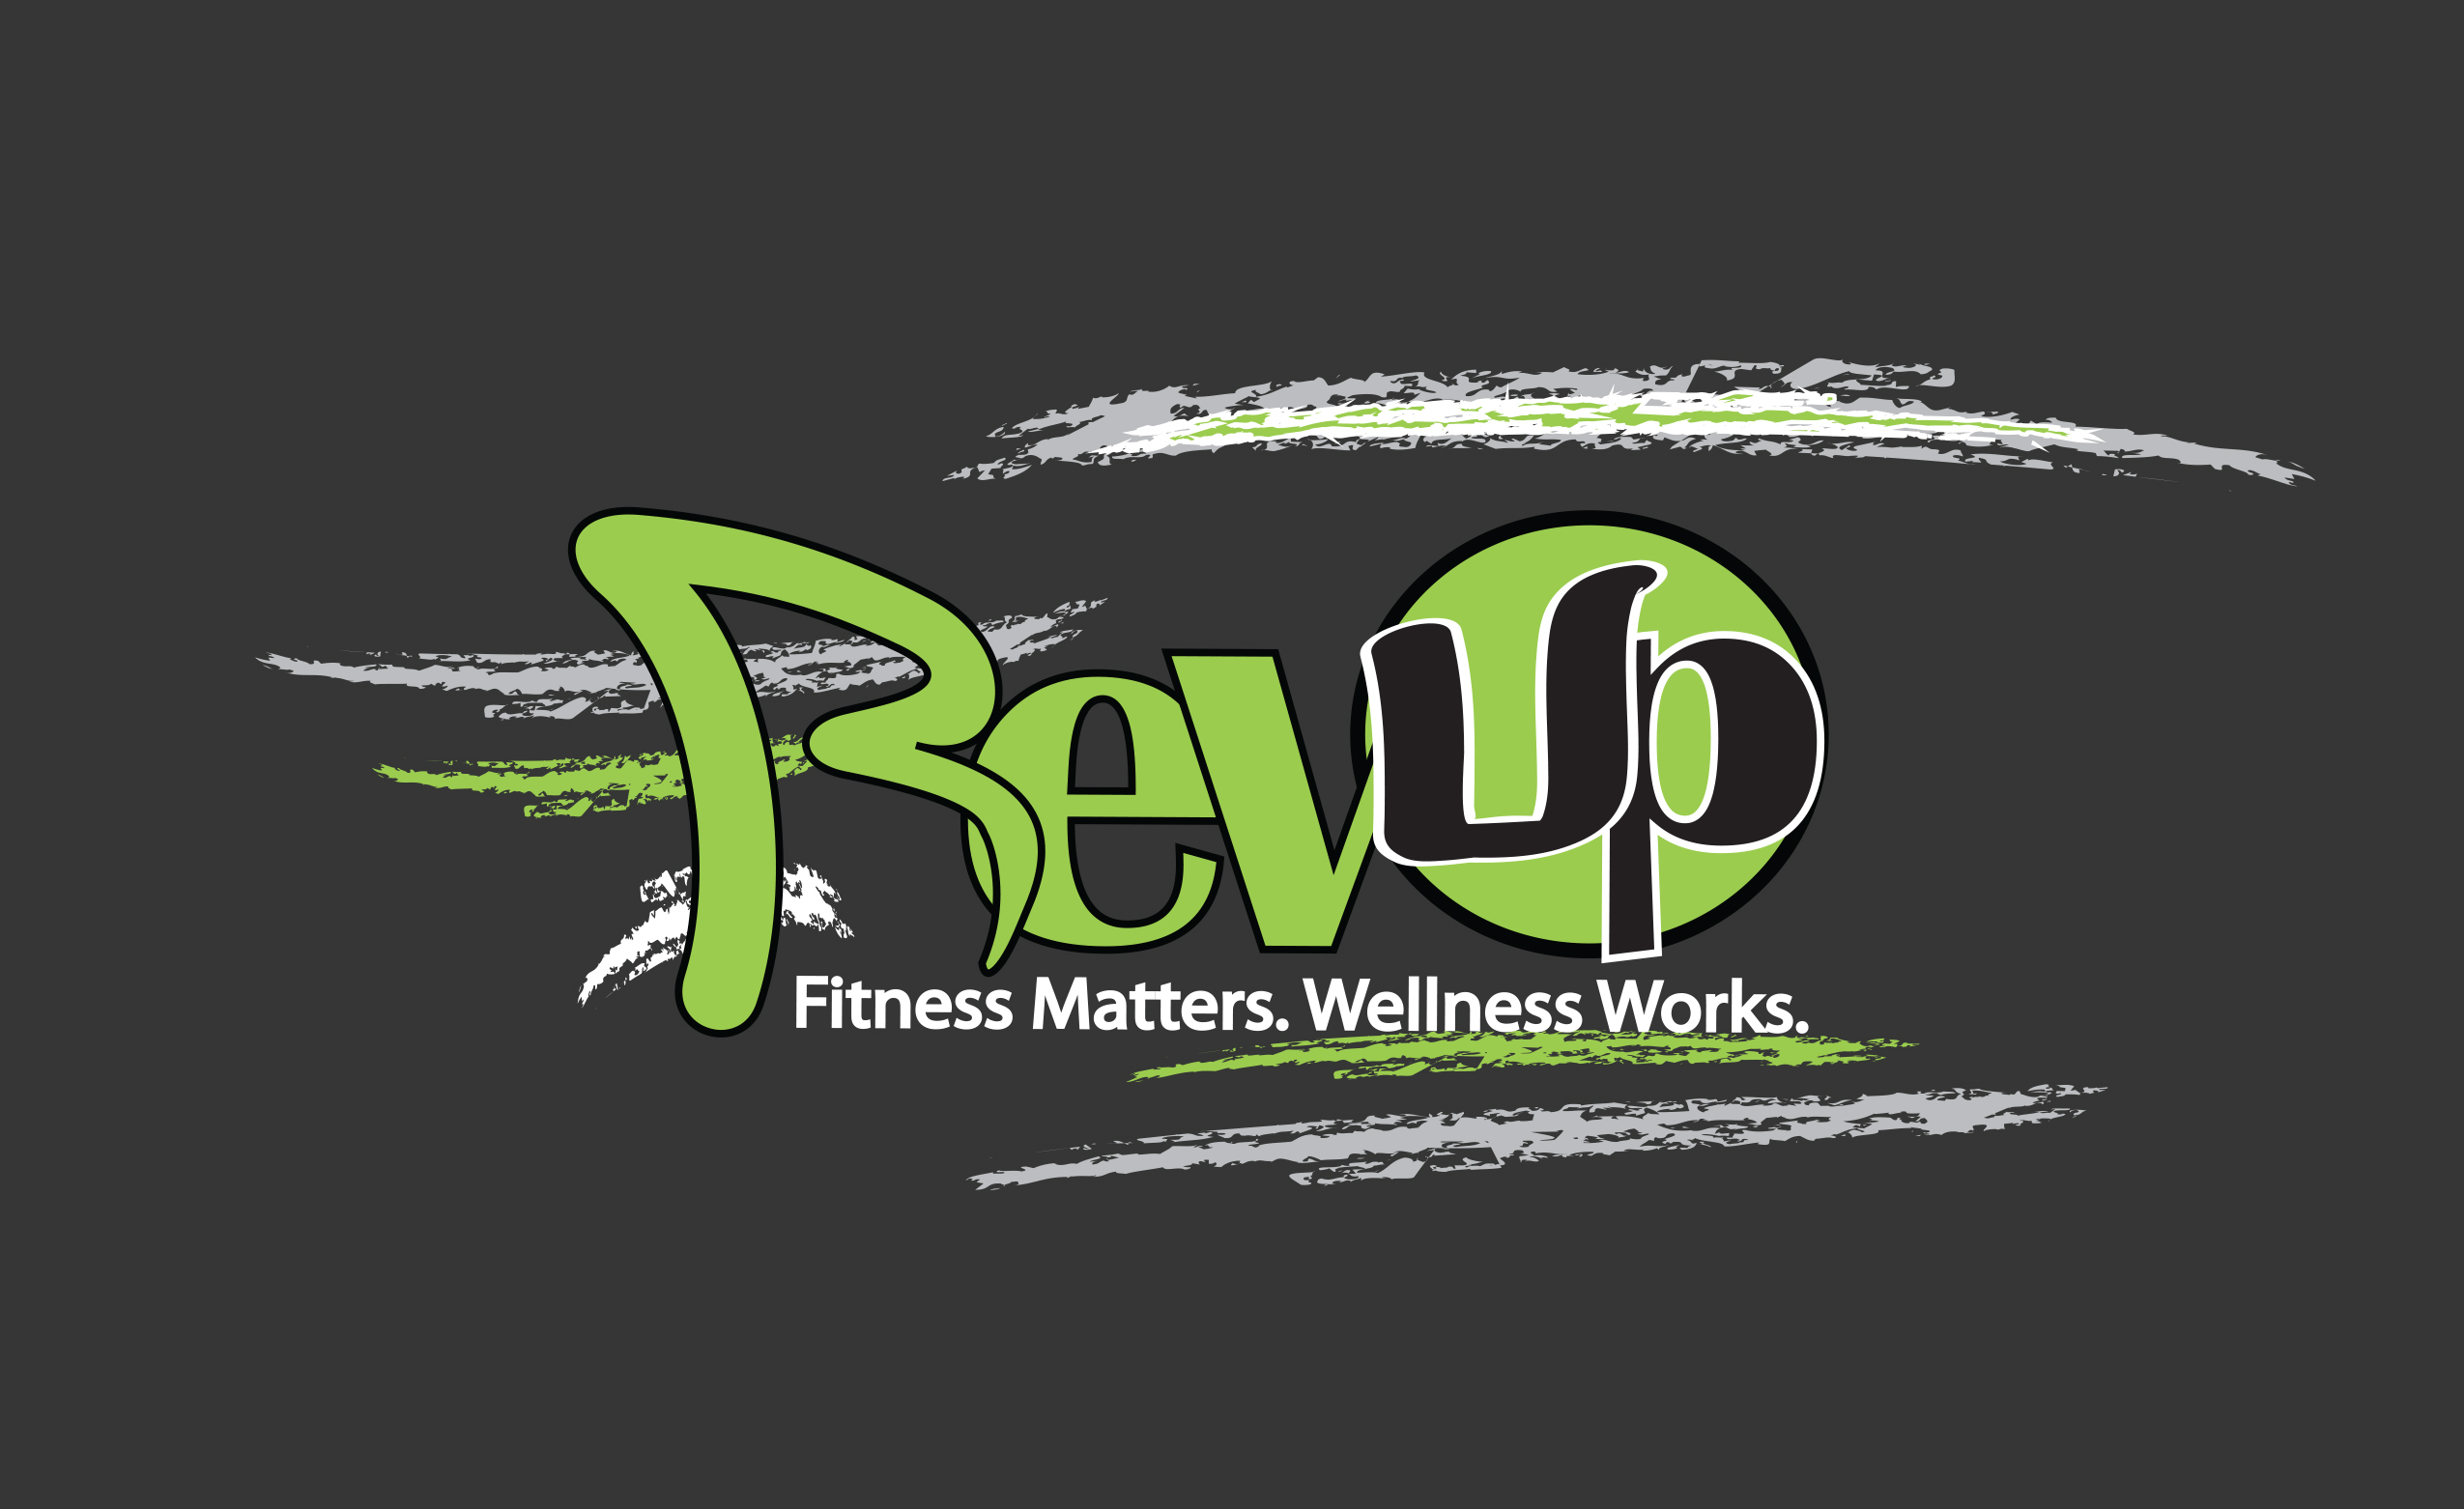 Image of RevUp fitness activities